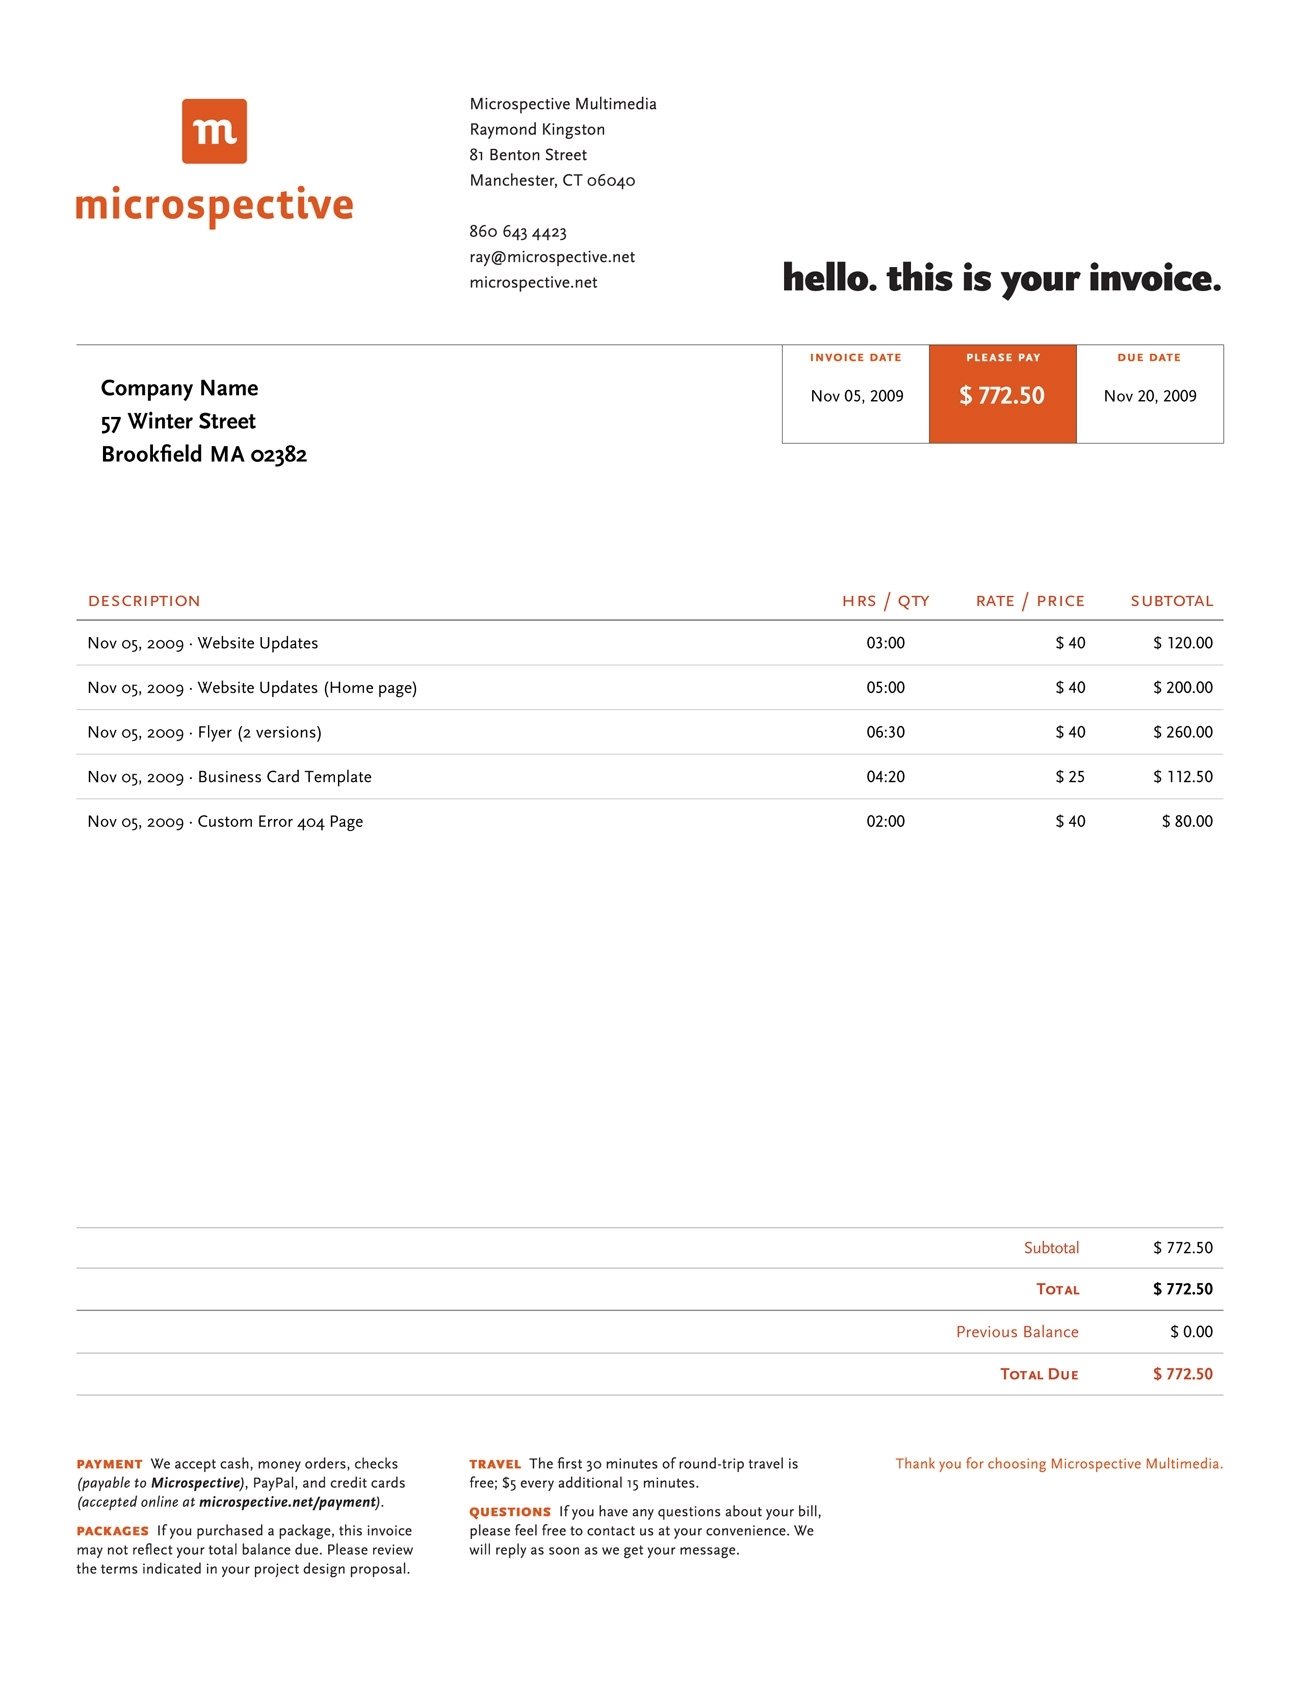 web development invoice web design invoice template web design invoice template hu9 web 1300 X 1682